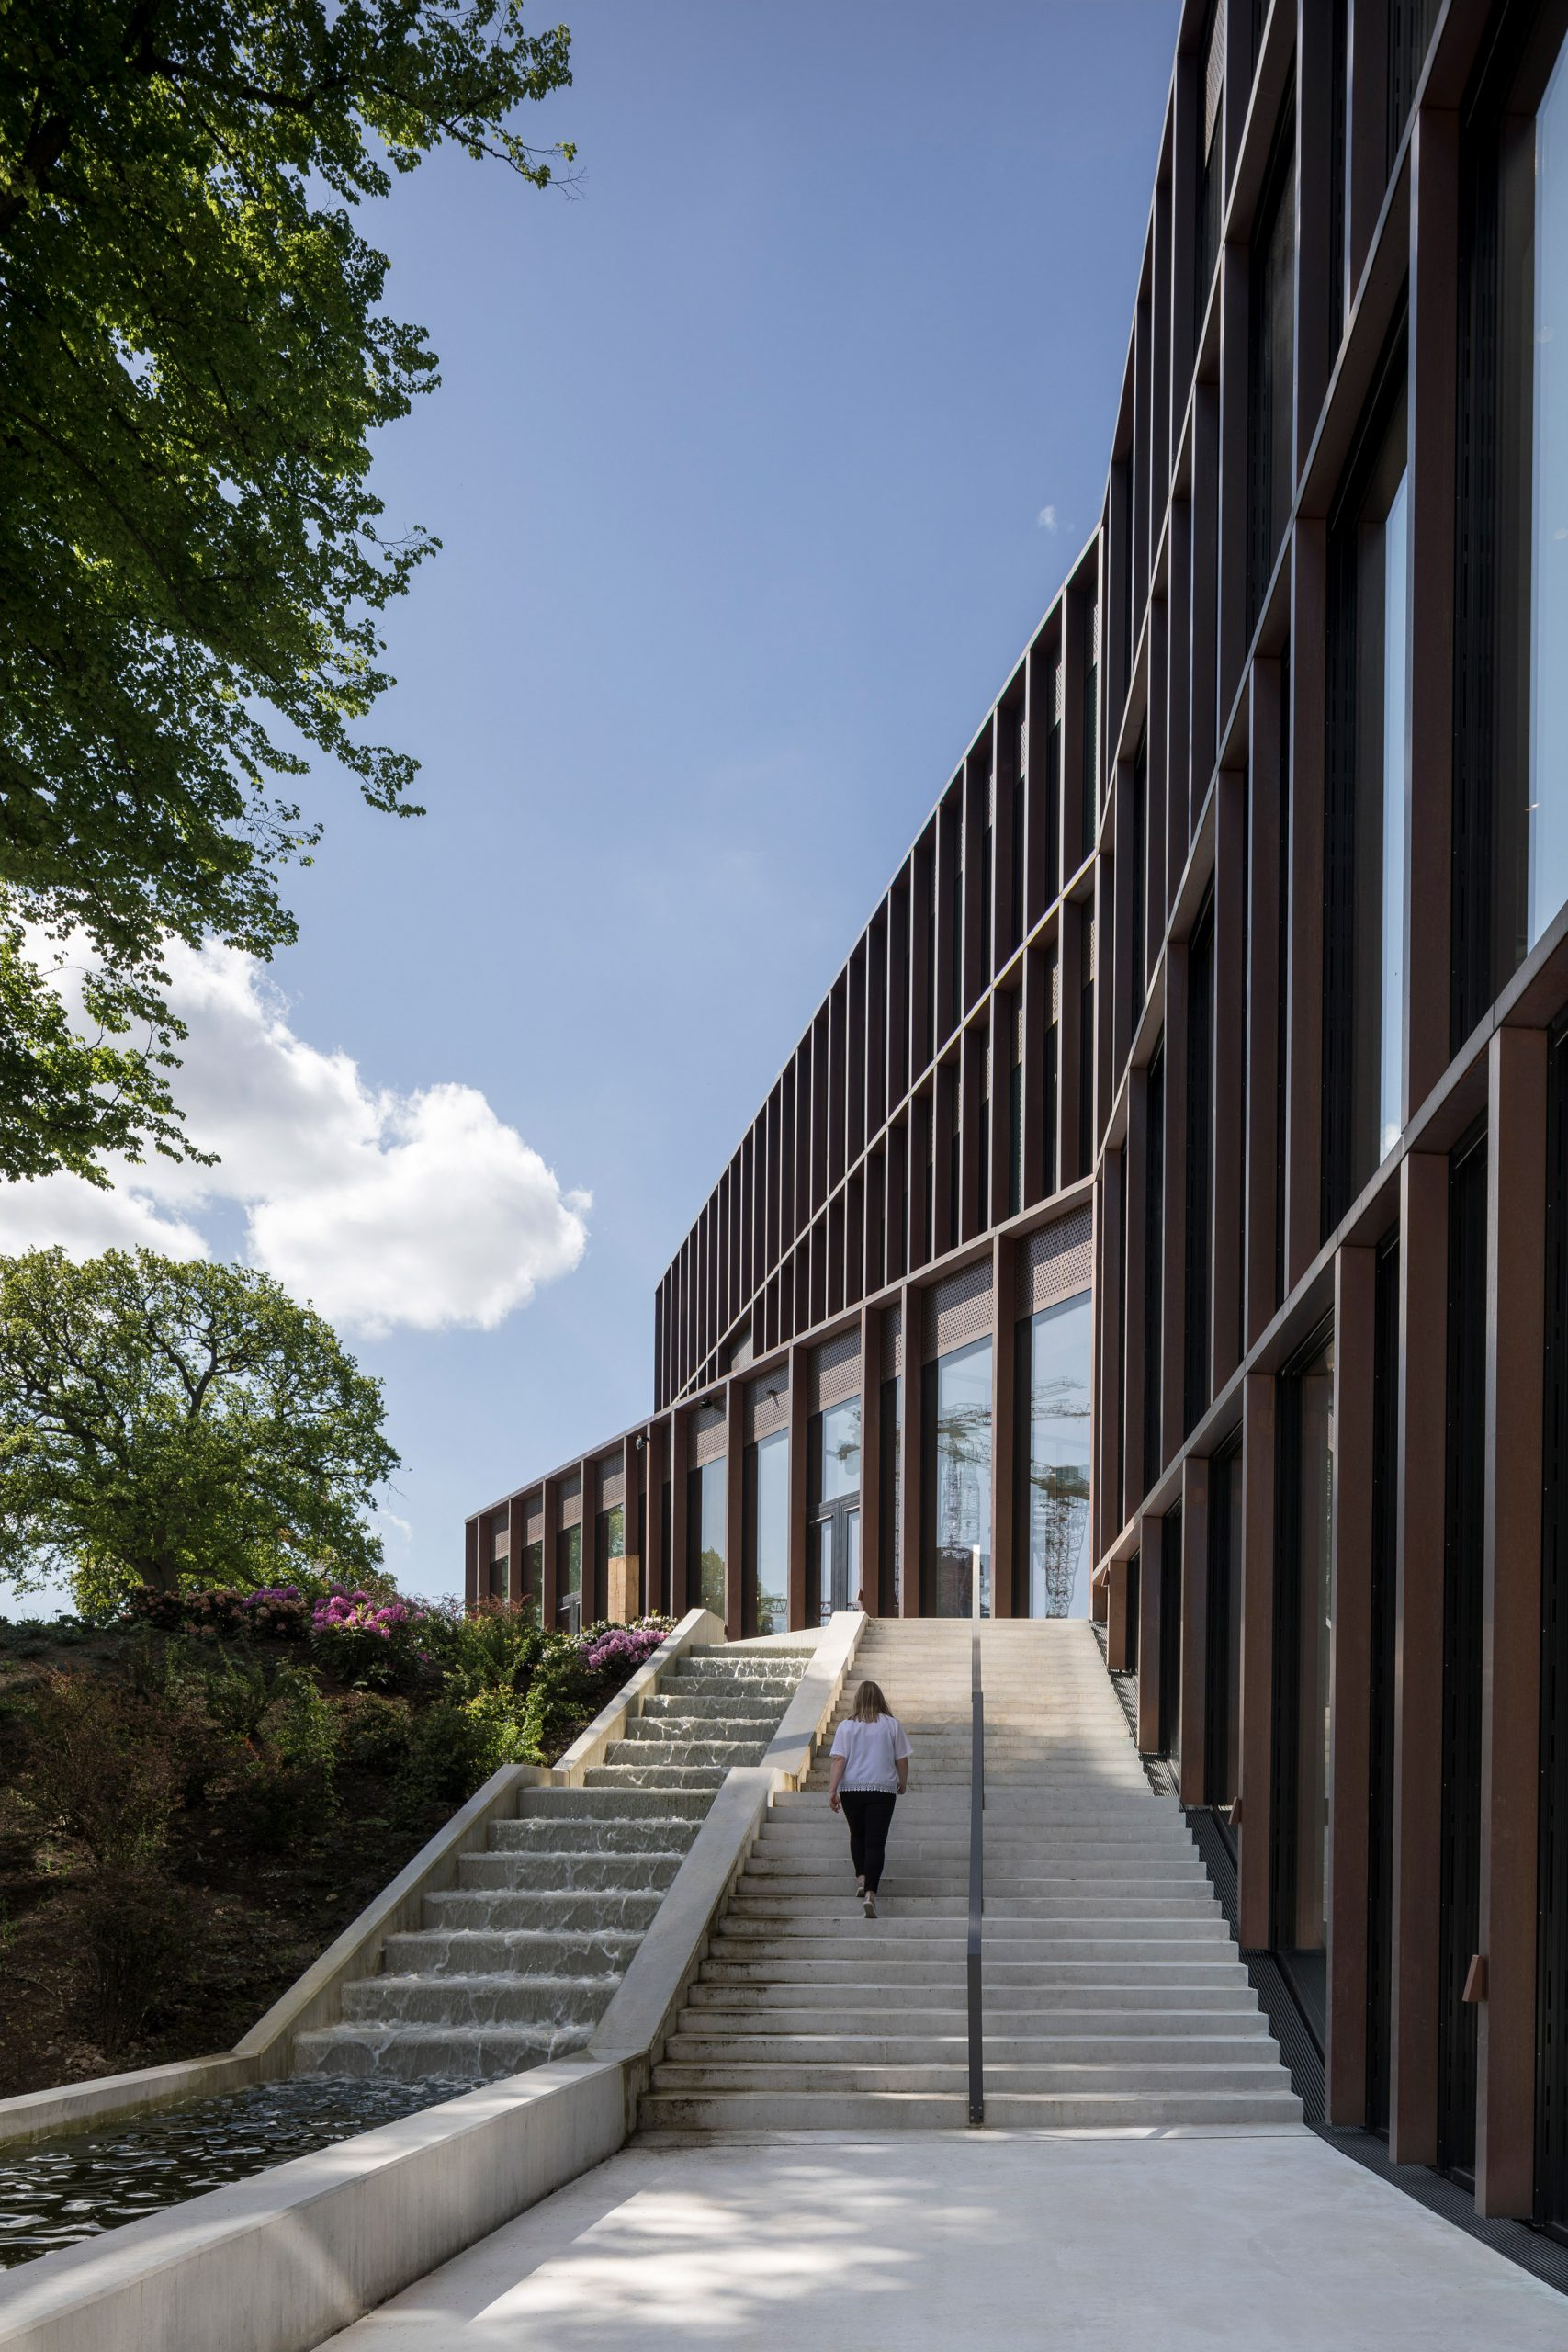 A spring runs the perimeter of the building by CF Møller Architects